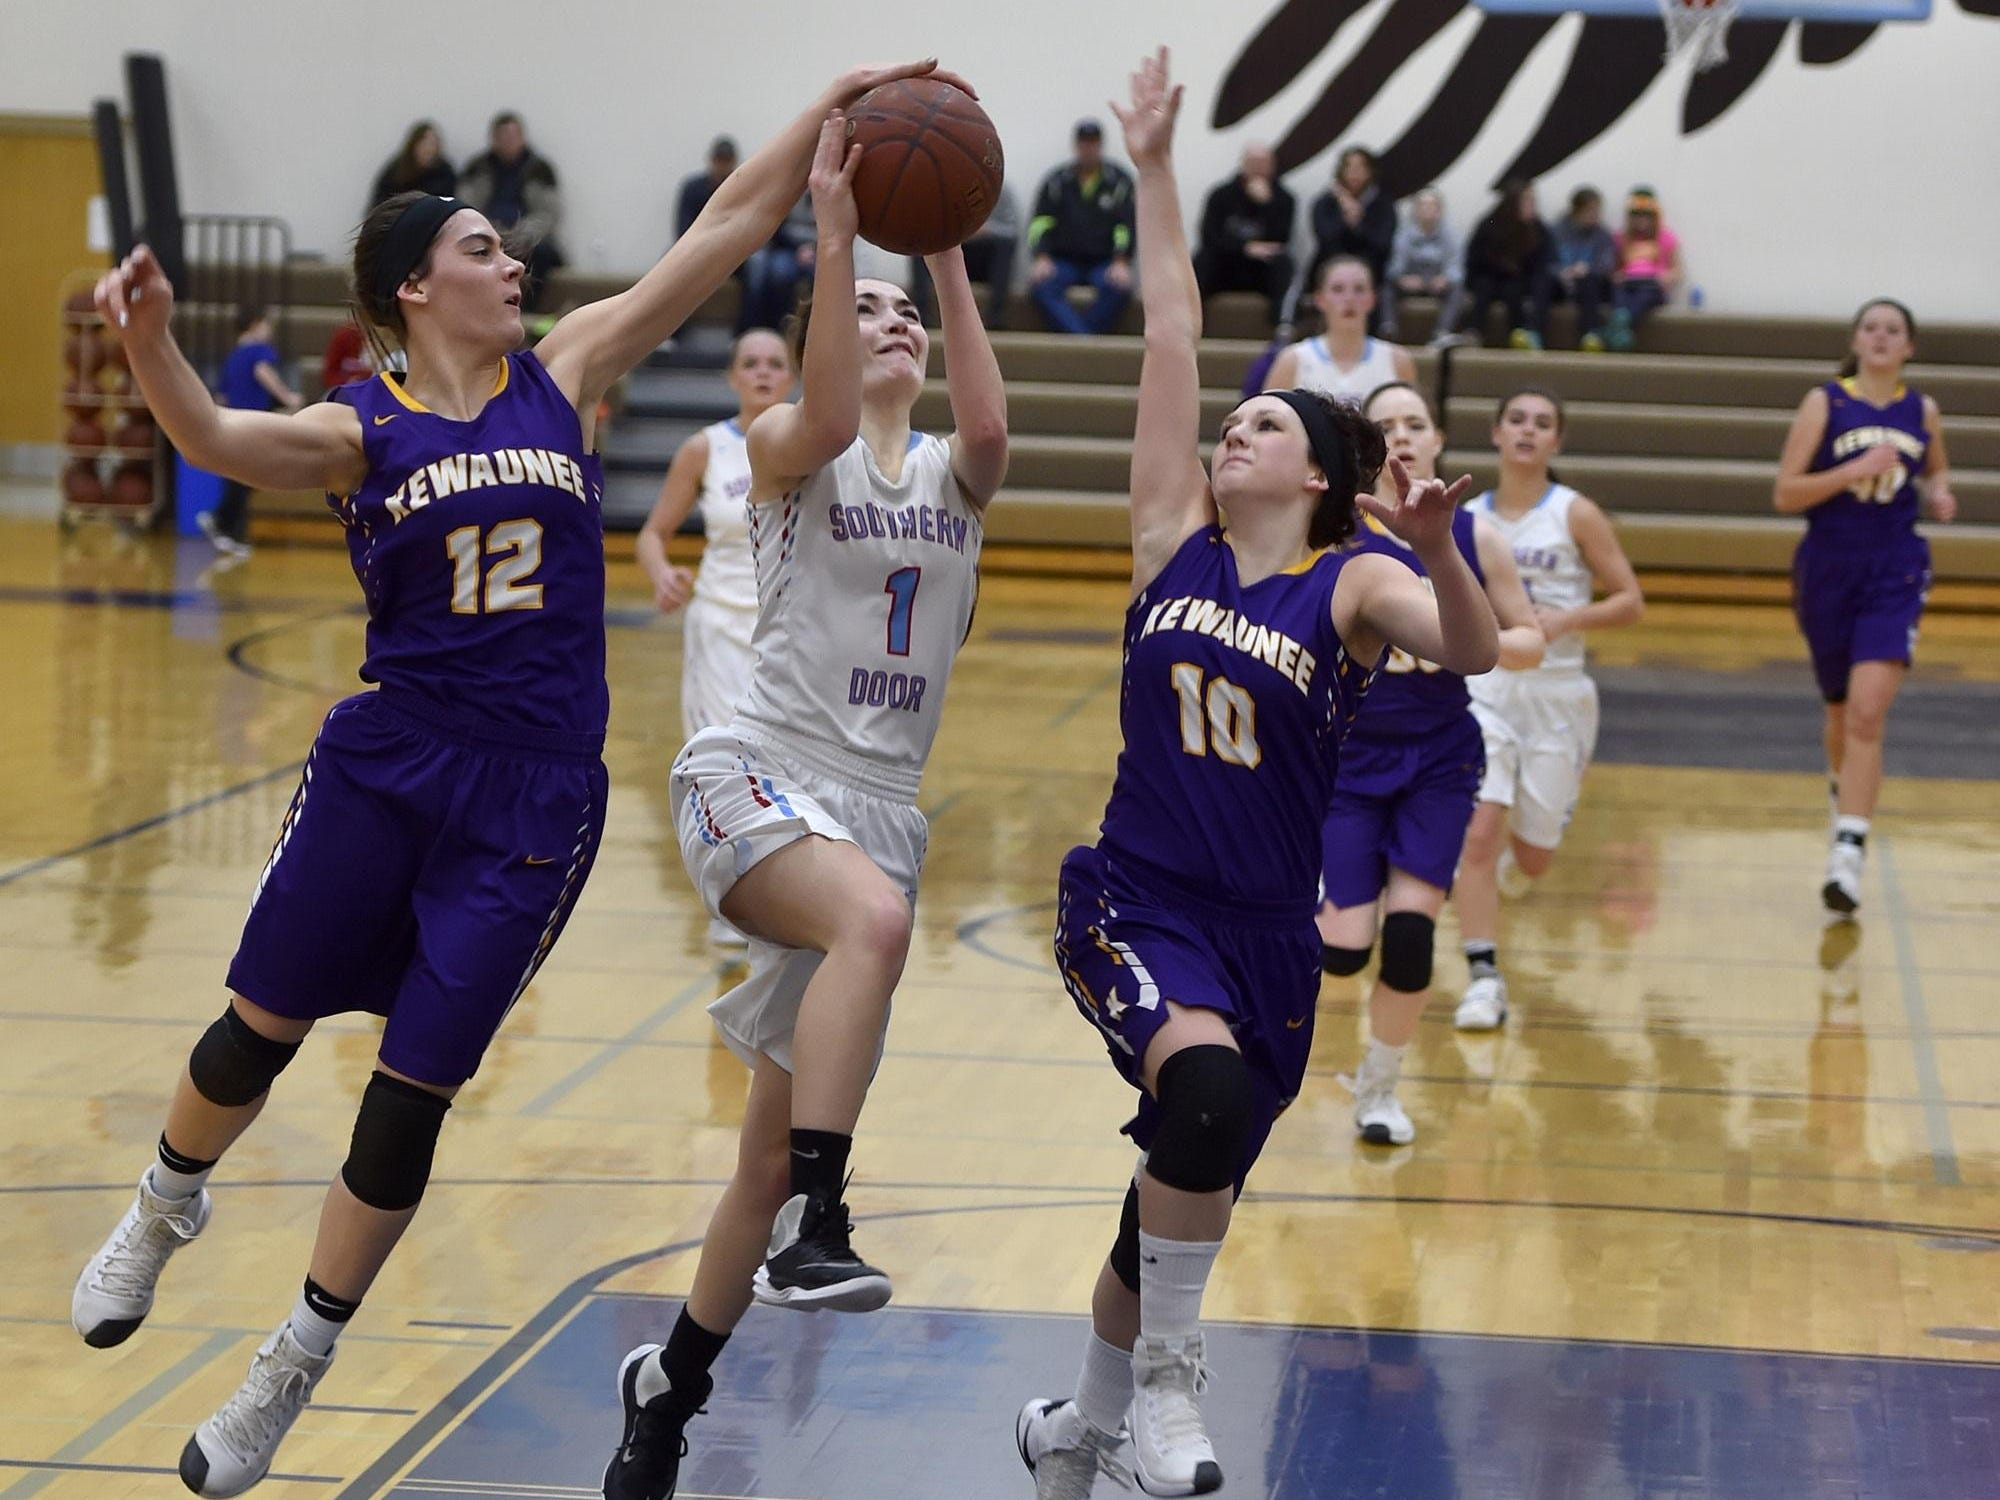 Southern Door's Katie Guilette drives the lane while being defended by Kewaunee's Brooke Geier, left, and McKenna Rentmeester on Friday during a Packerland Conference girls basketball game Friday.